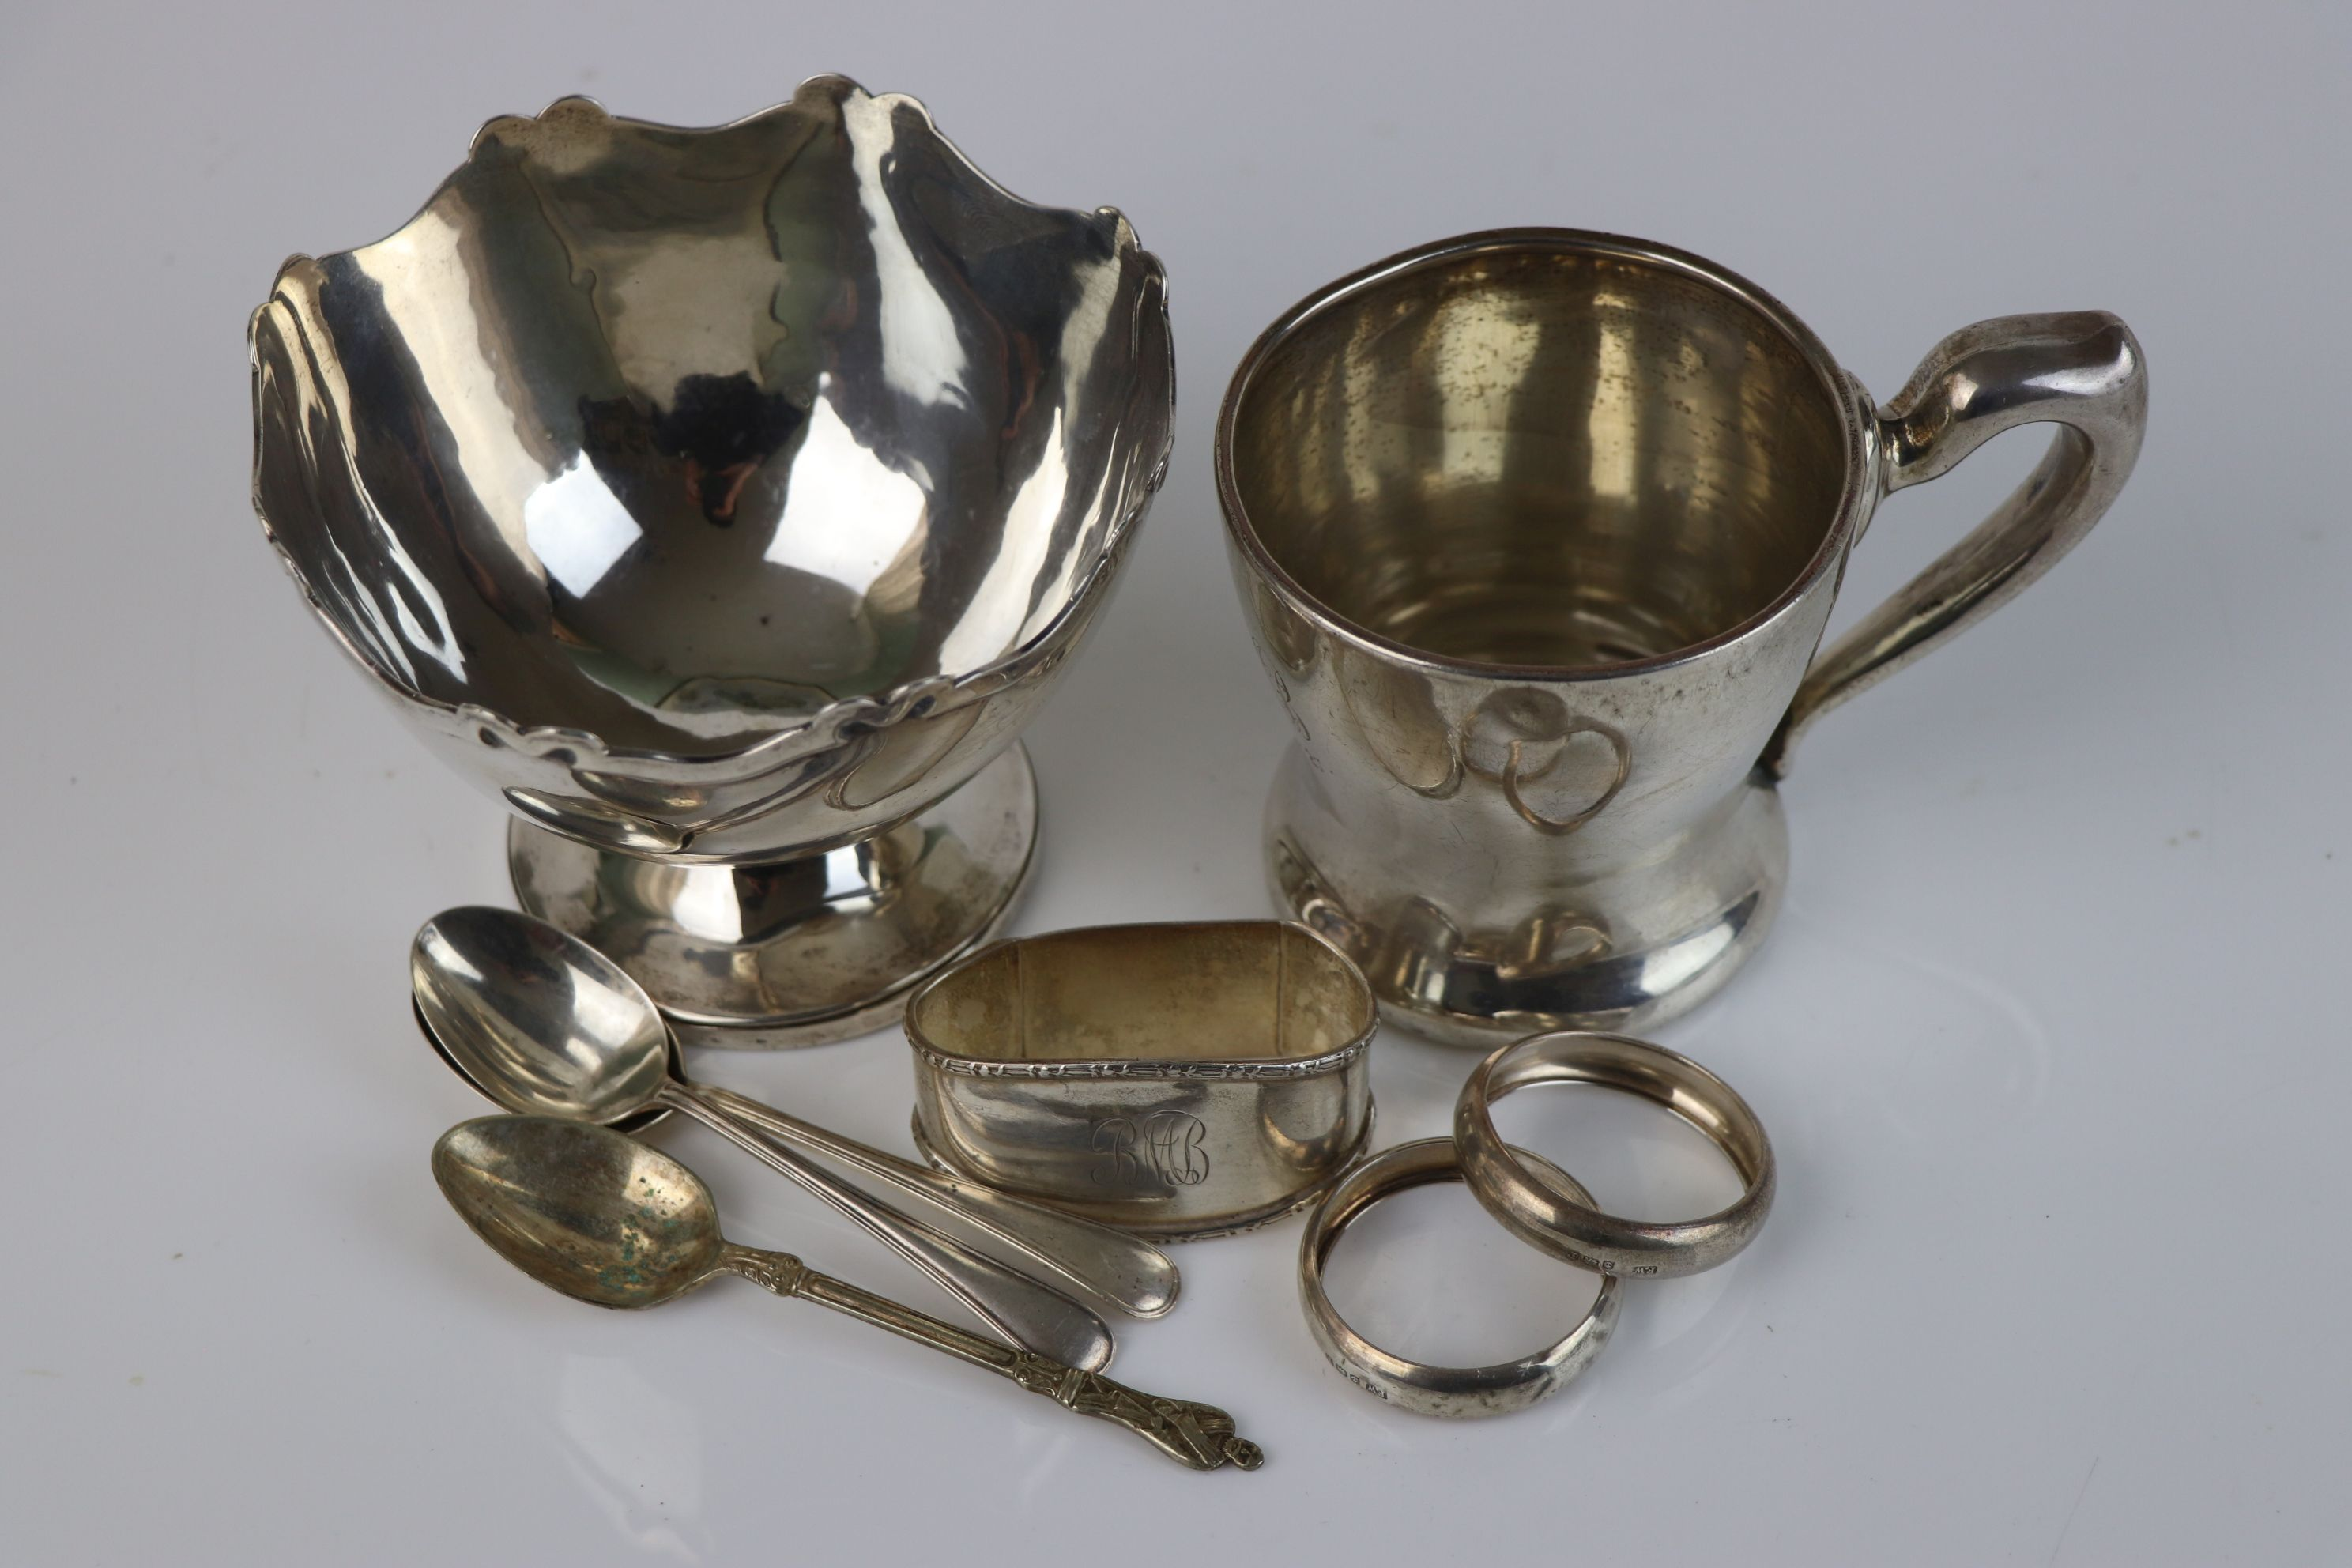 A collection of fully hallmarked sterling silver to include sugar bowl, cup, napkin rings and - Image 6 of 6